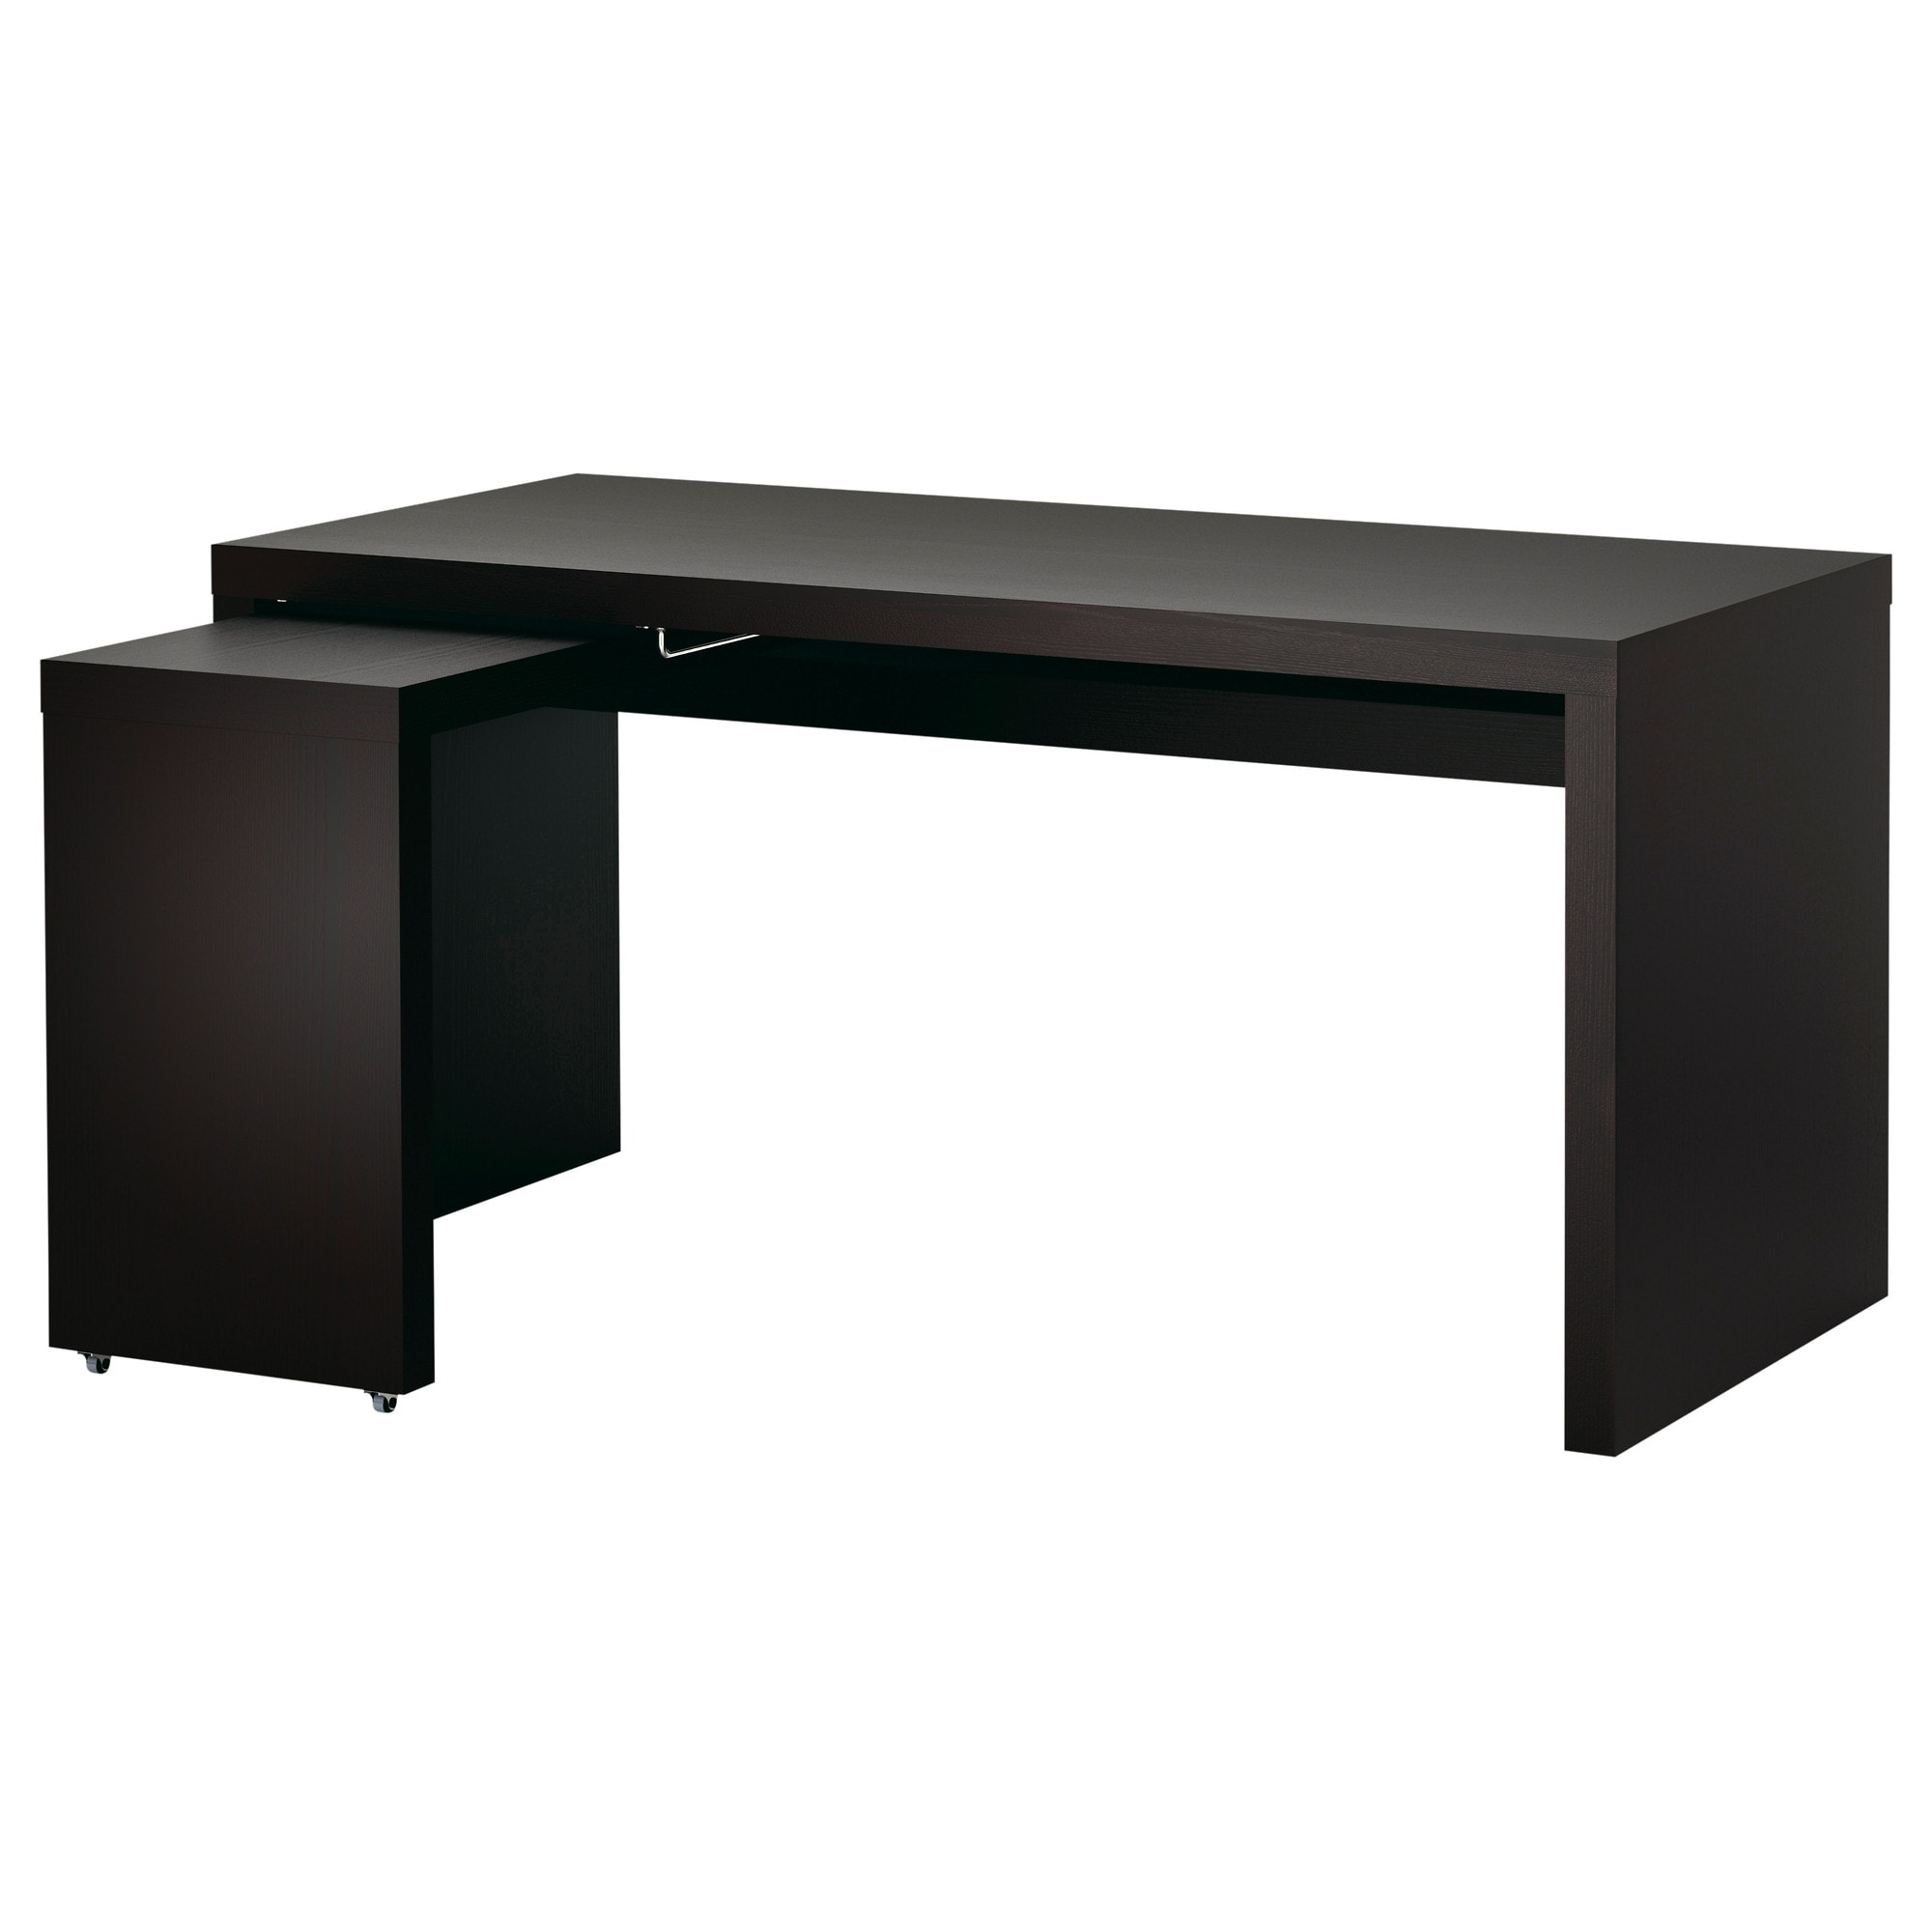 Ikea gustav  MALM Desk with pull-out panel - black-brown - IKEA